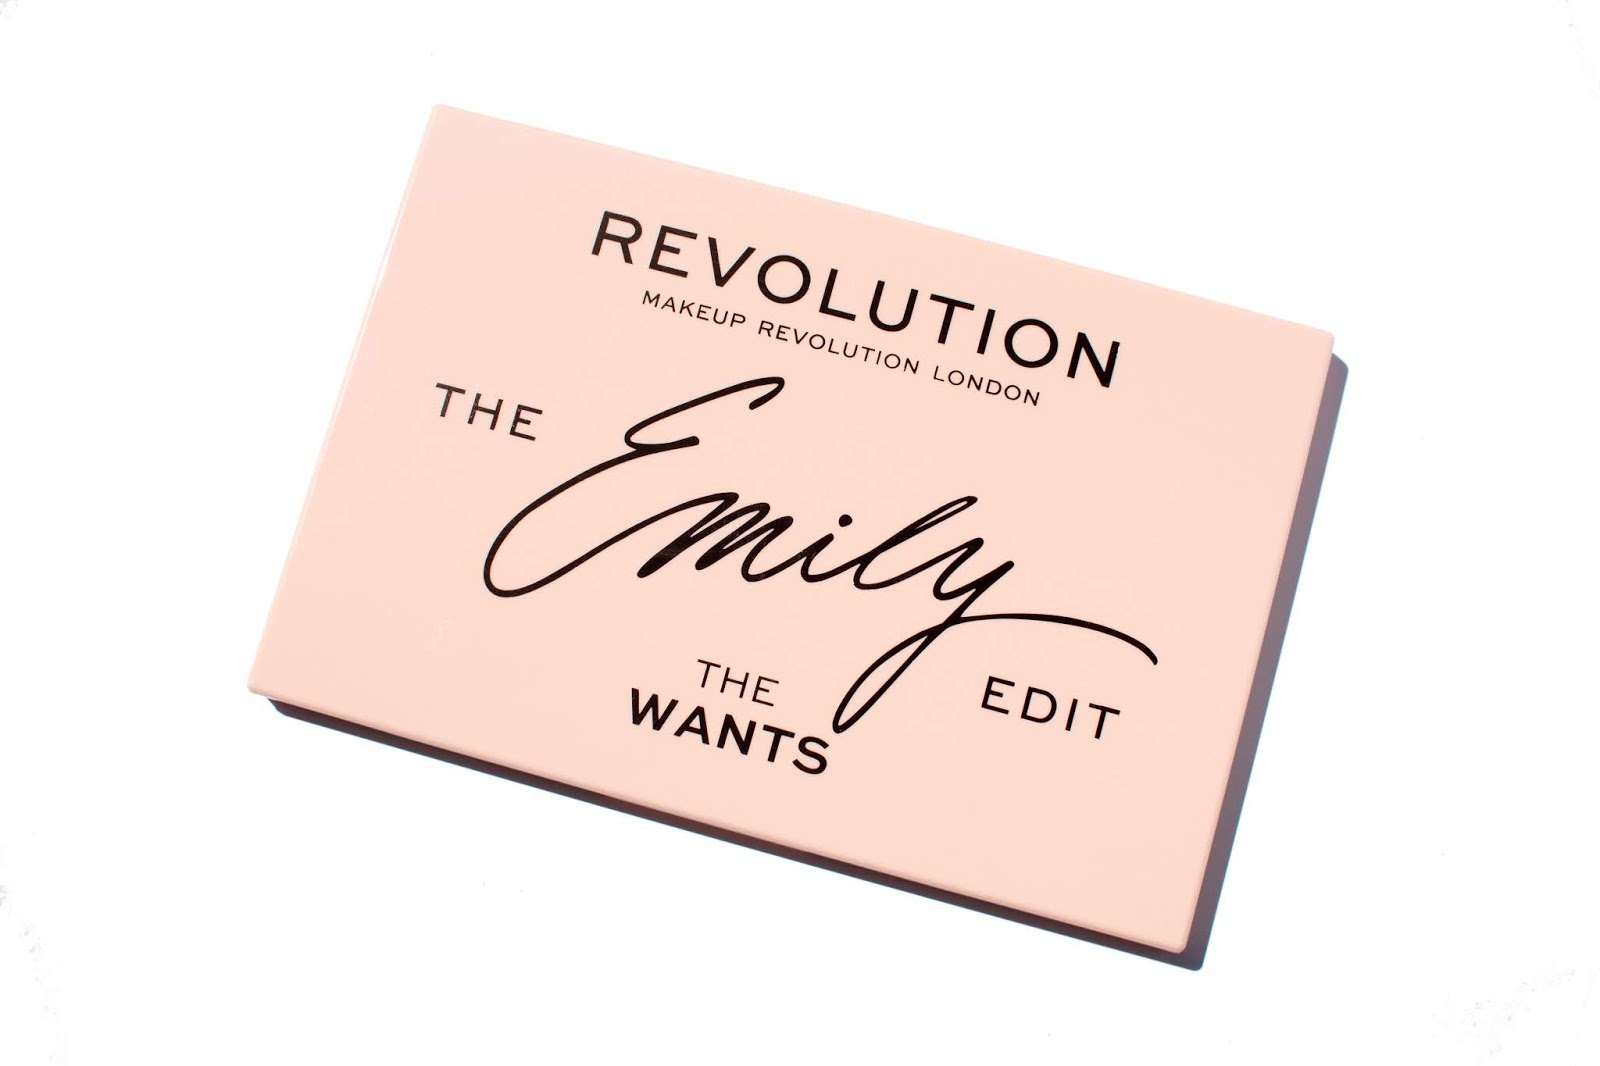 Revolution x The Emily Edit - The Wants Eyeshadow Palette: Swatches, Review